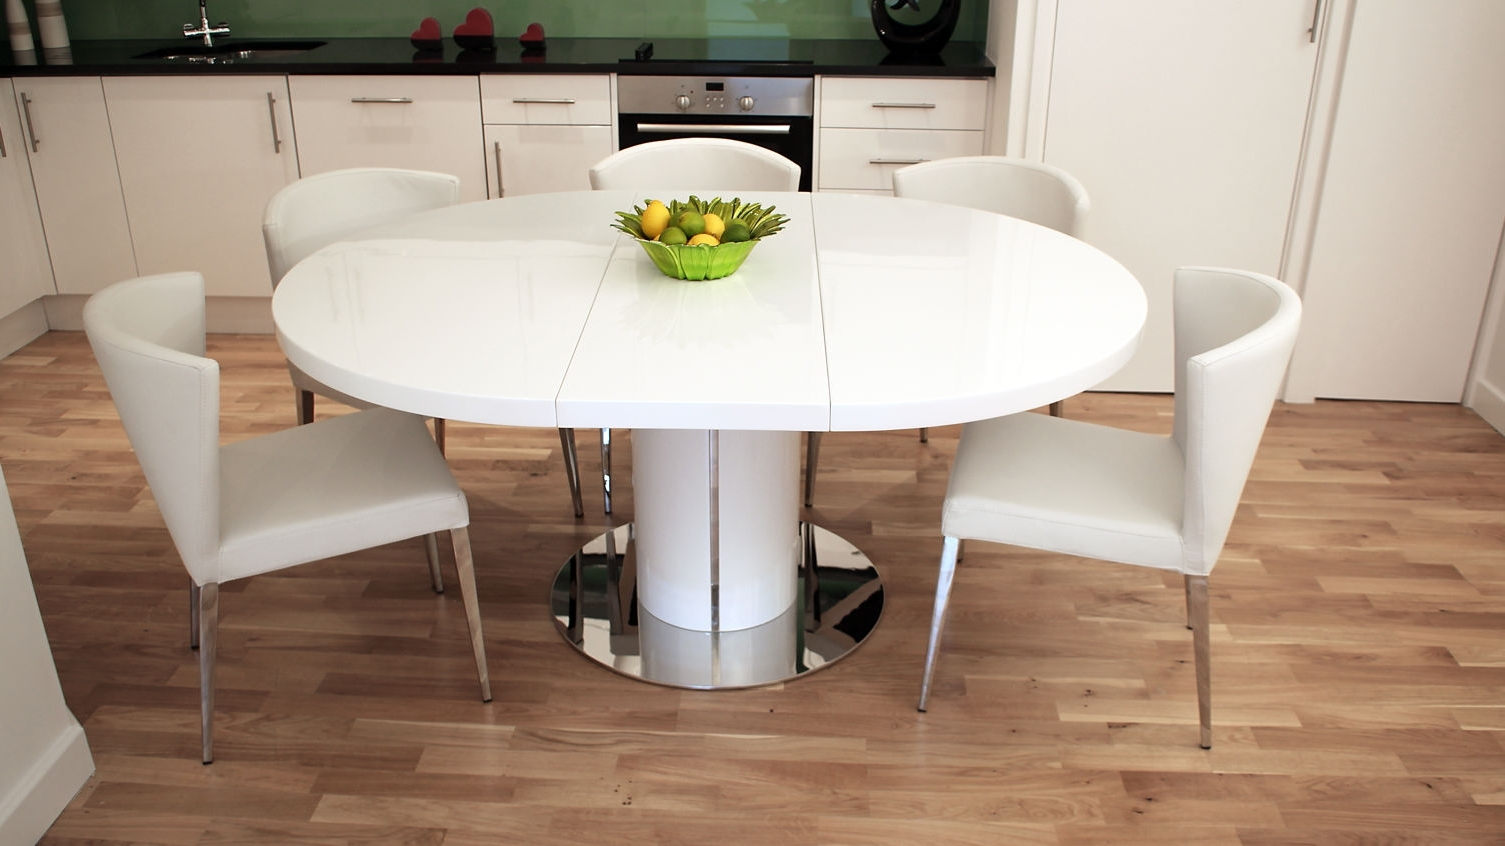 Red Gloss Dining Tables Intended For Newest Diy Painting White Round Dining Table — The Home Redesign (View 18 of 25)